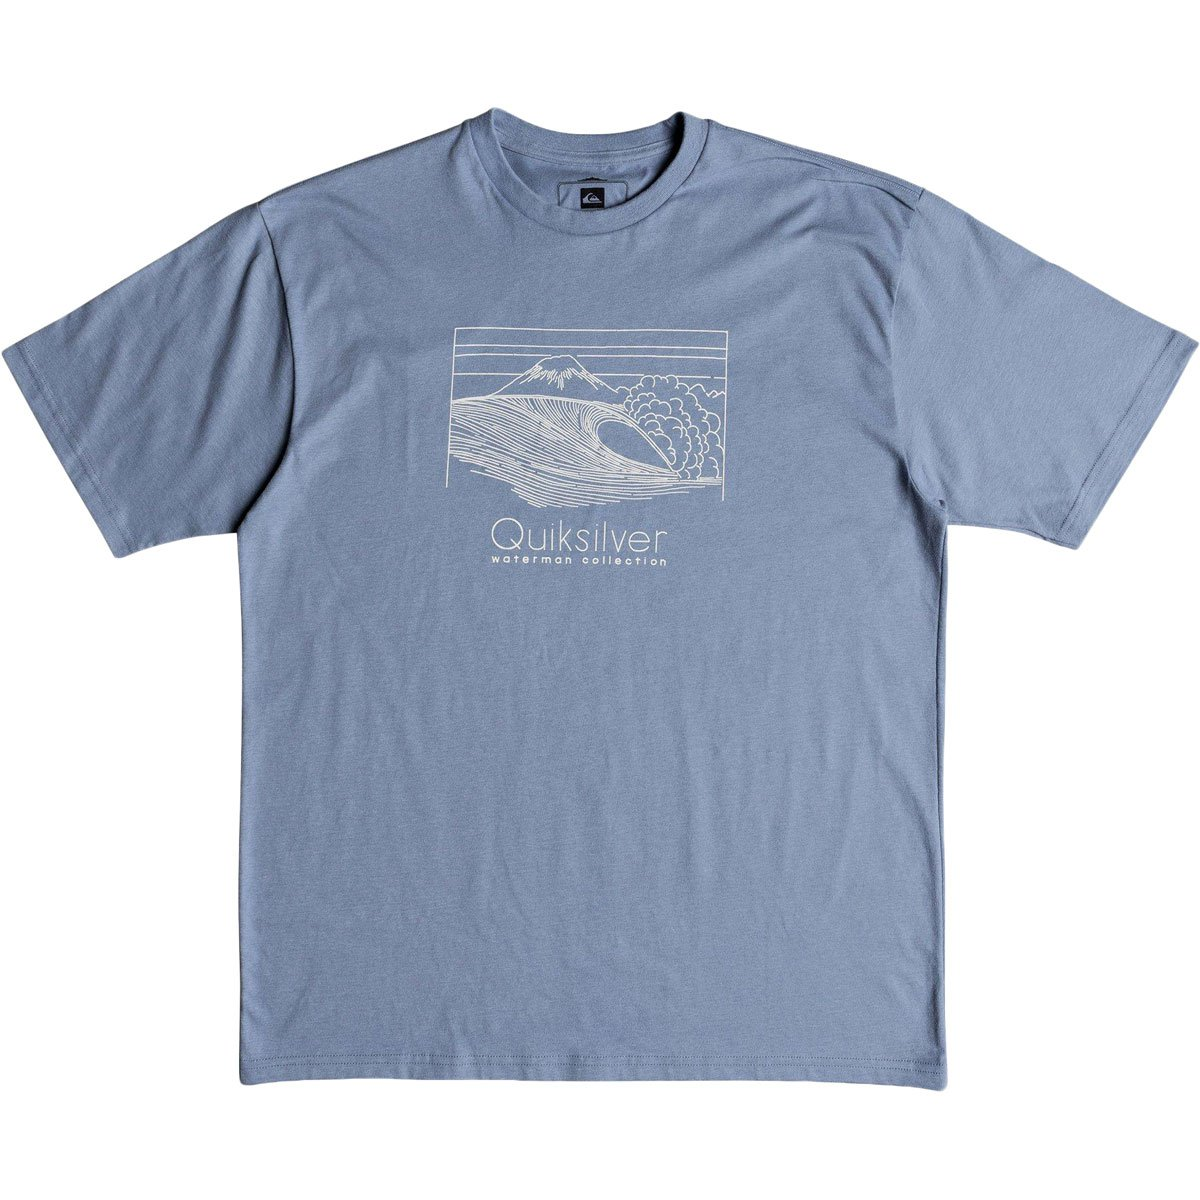 Quiksilver Men's Sketchy Scene Tee Shirt, Blue Shadow, L